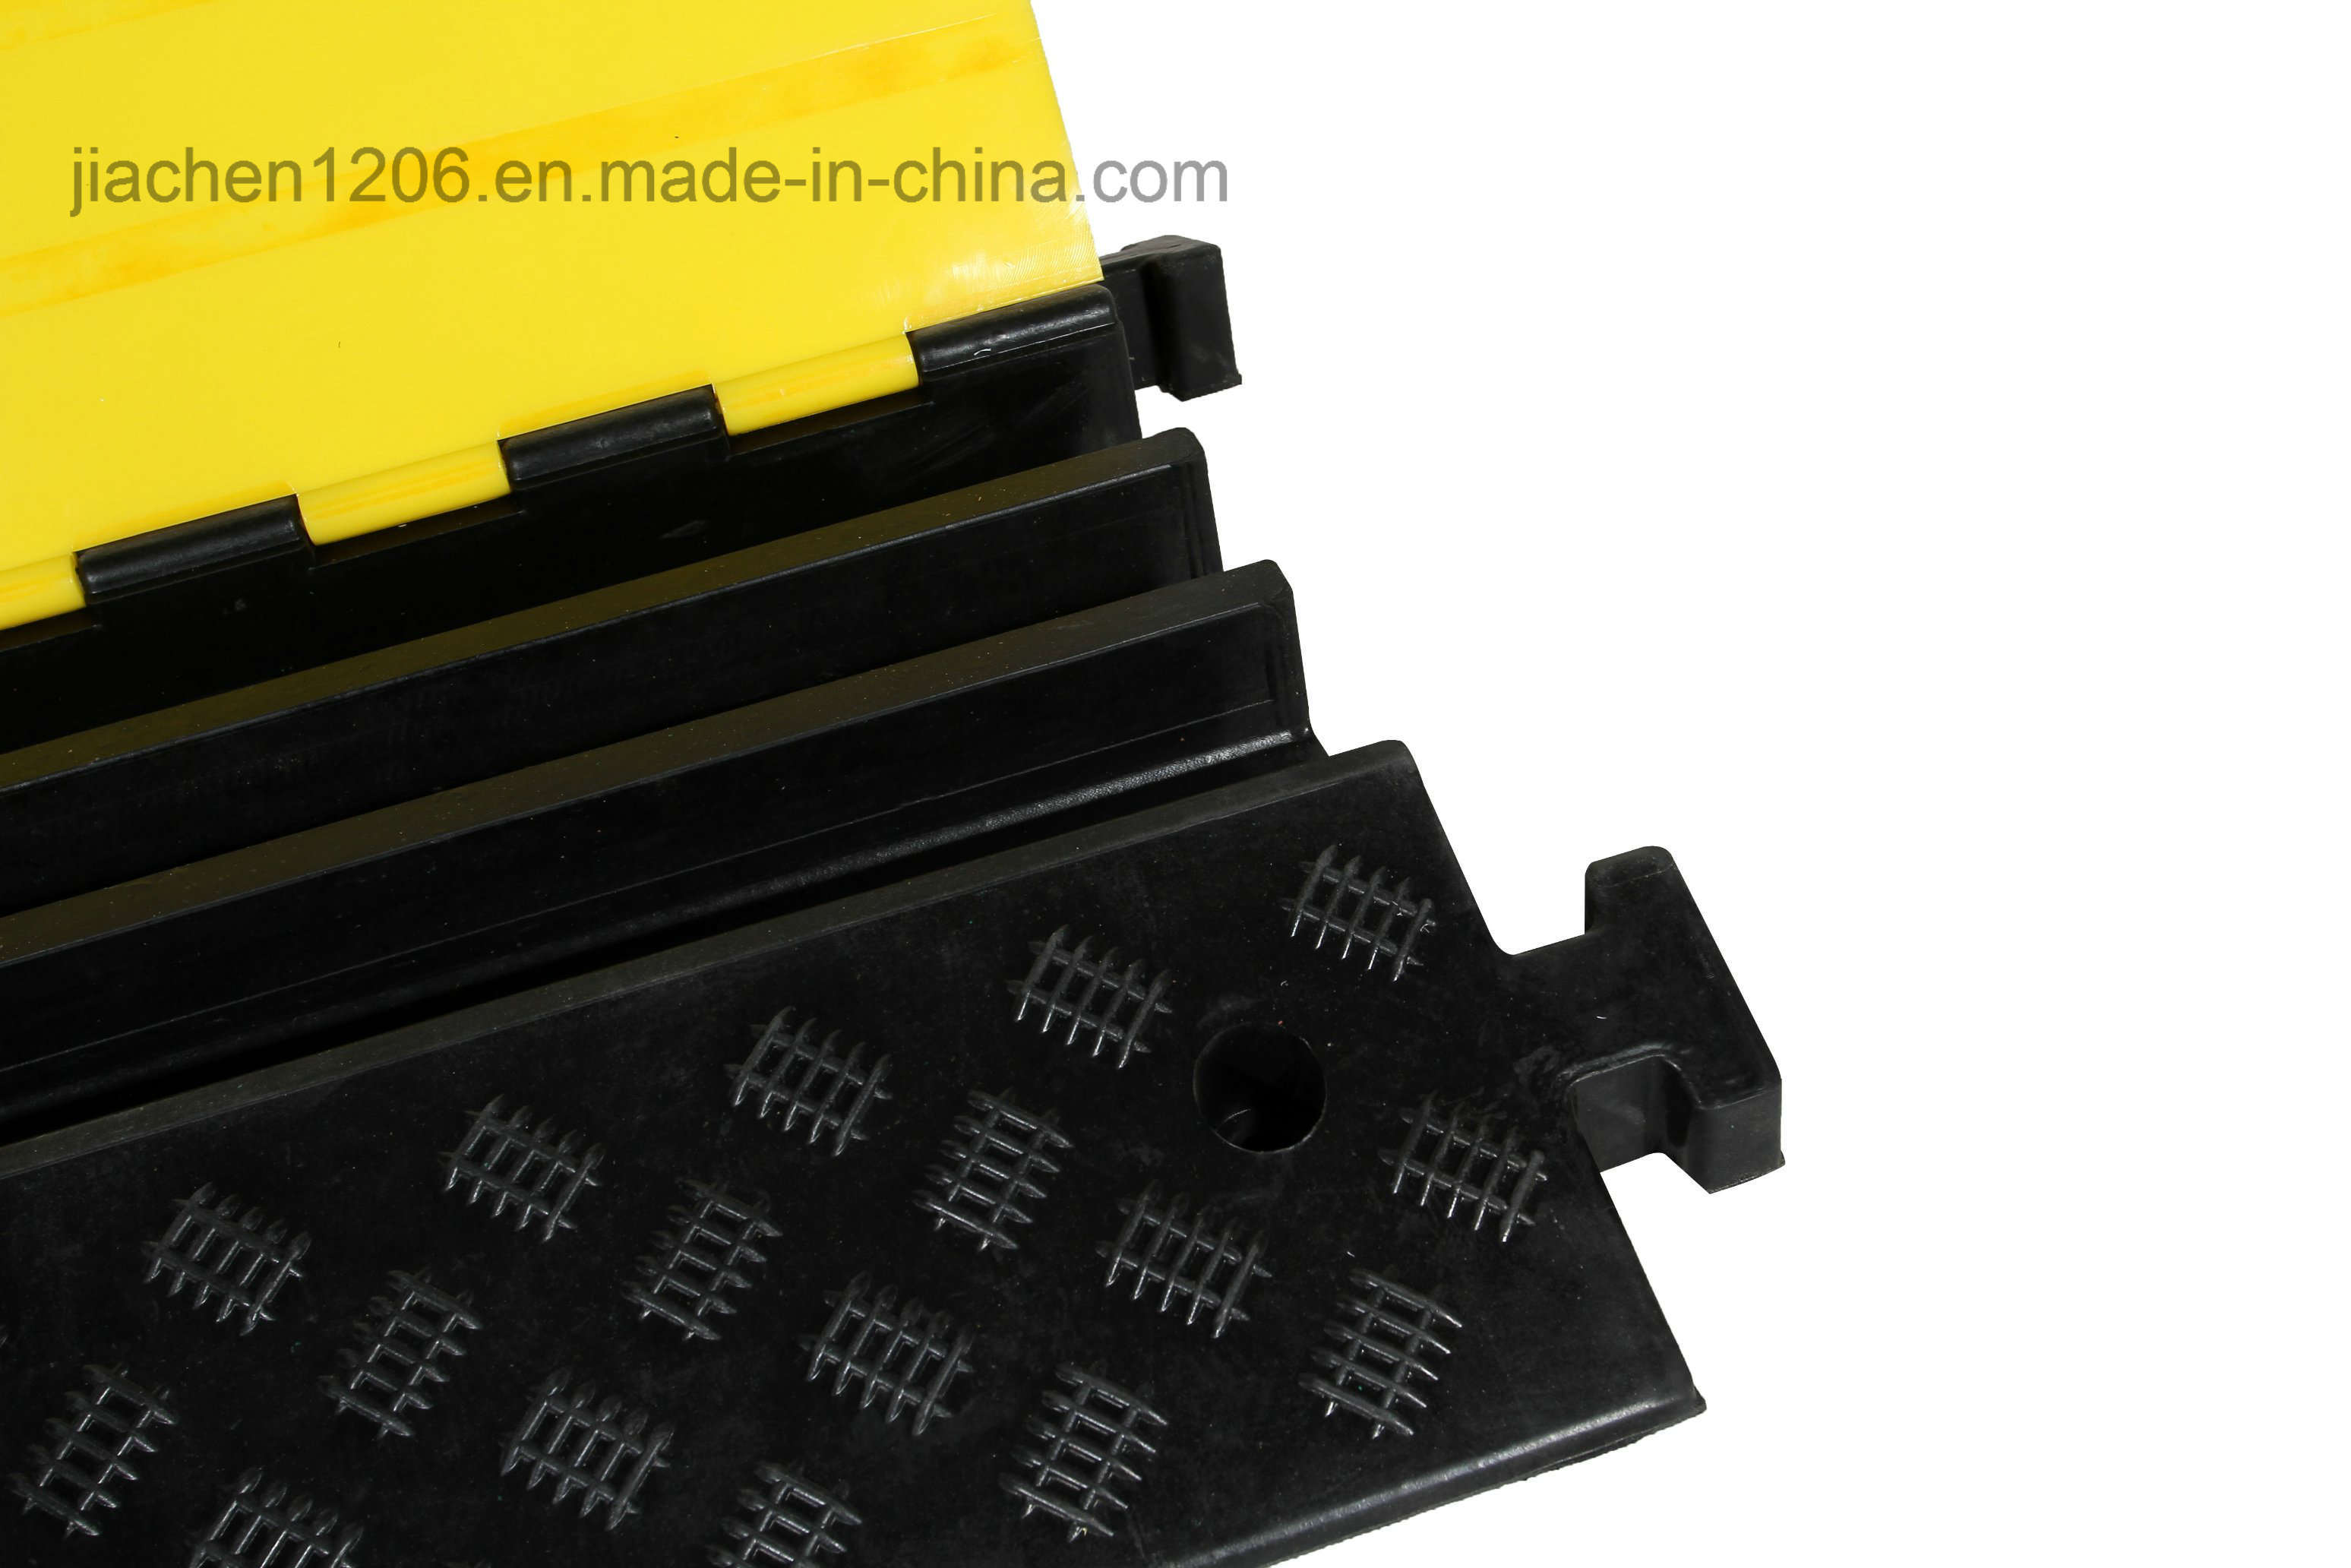 Jiachen Hot Sale Low Price High Density Rubber 3 Channels Cable Protector with Yellow Cover